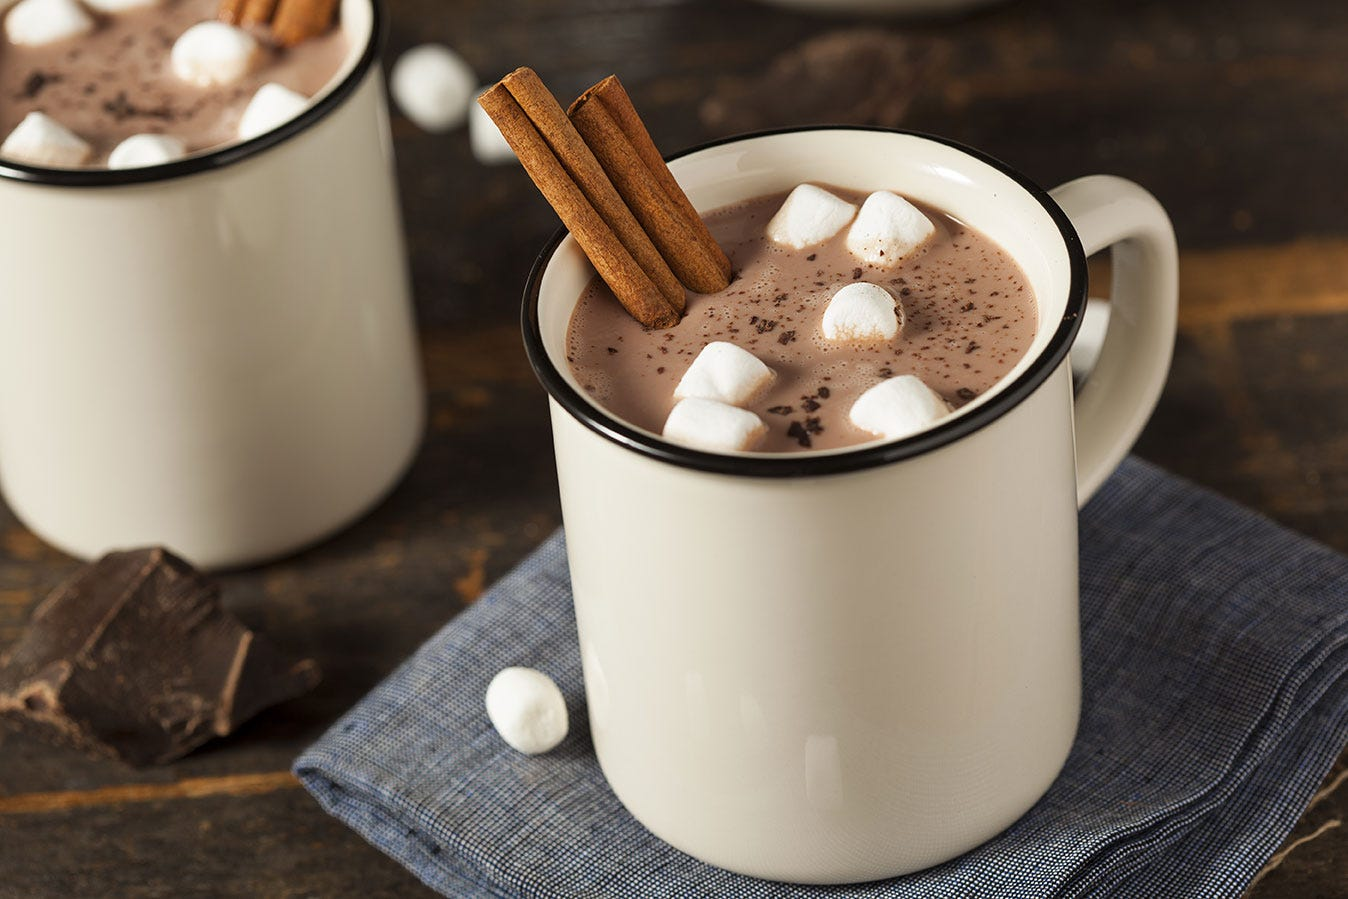 Mug of hot chocolate with mini marshmallows and cinnamon stick